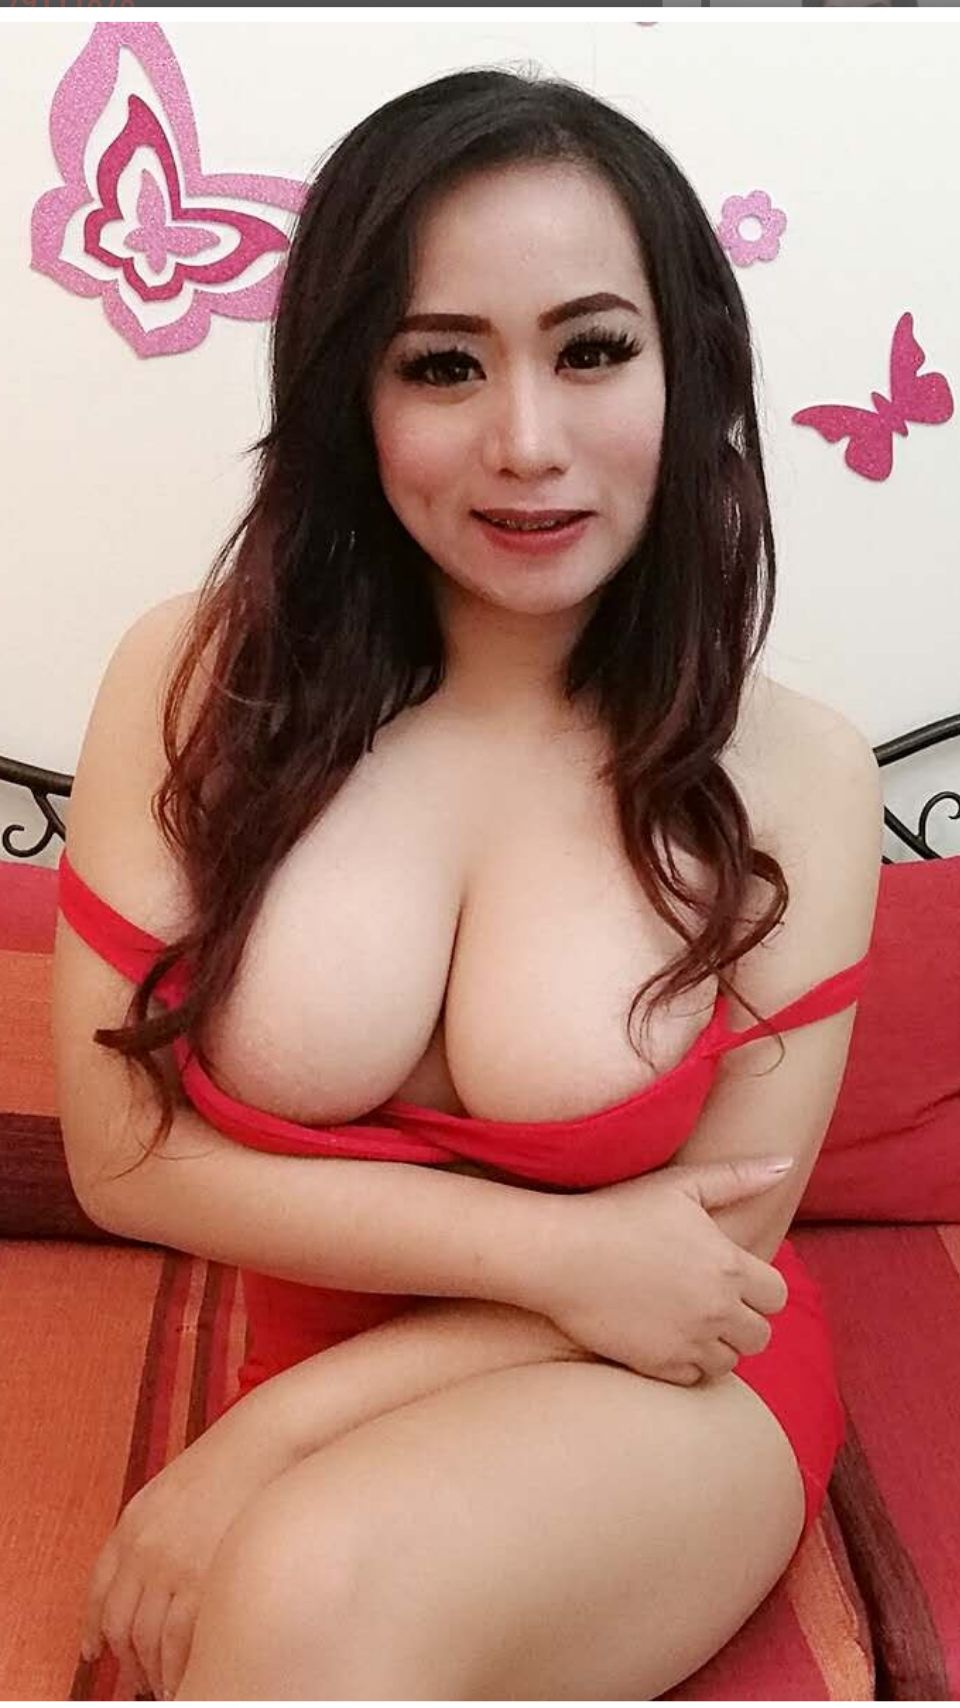 huge boobs thailand escort agency